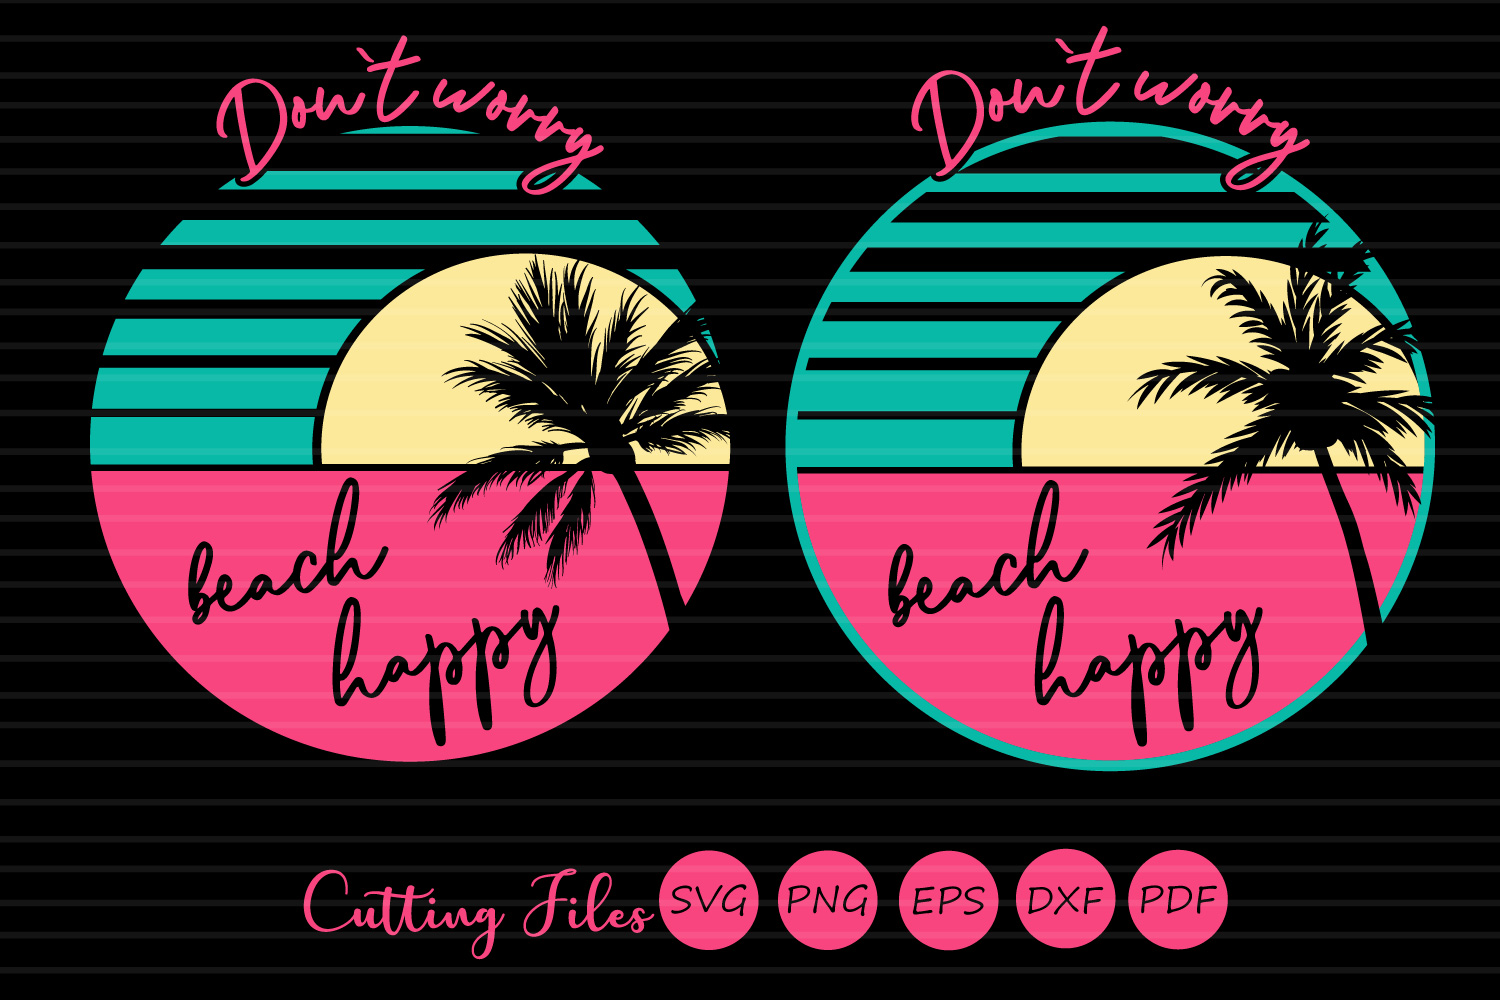 Download Free Dont Worry Beach Happy Summer Svg Graphic By Hd Art Workshop for Cricut Explore, Silhouette and other cutting machines.